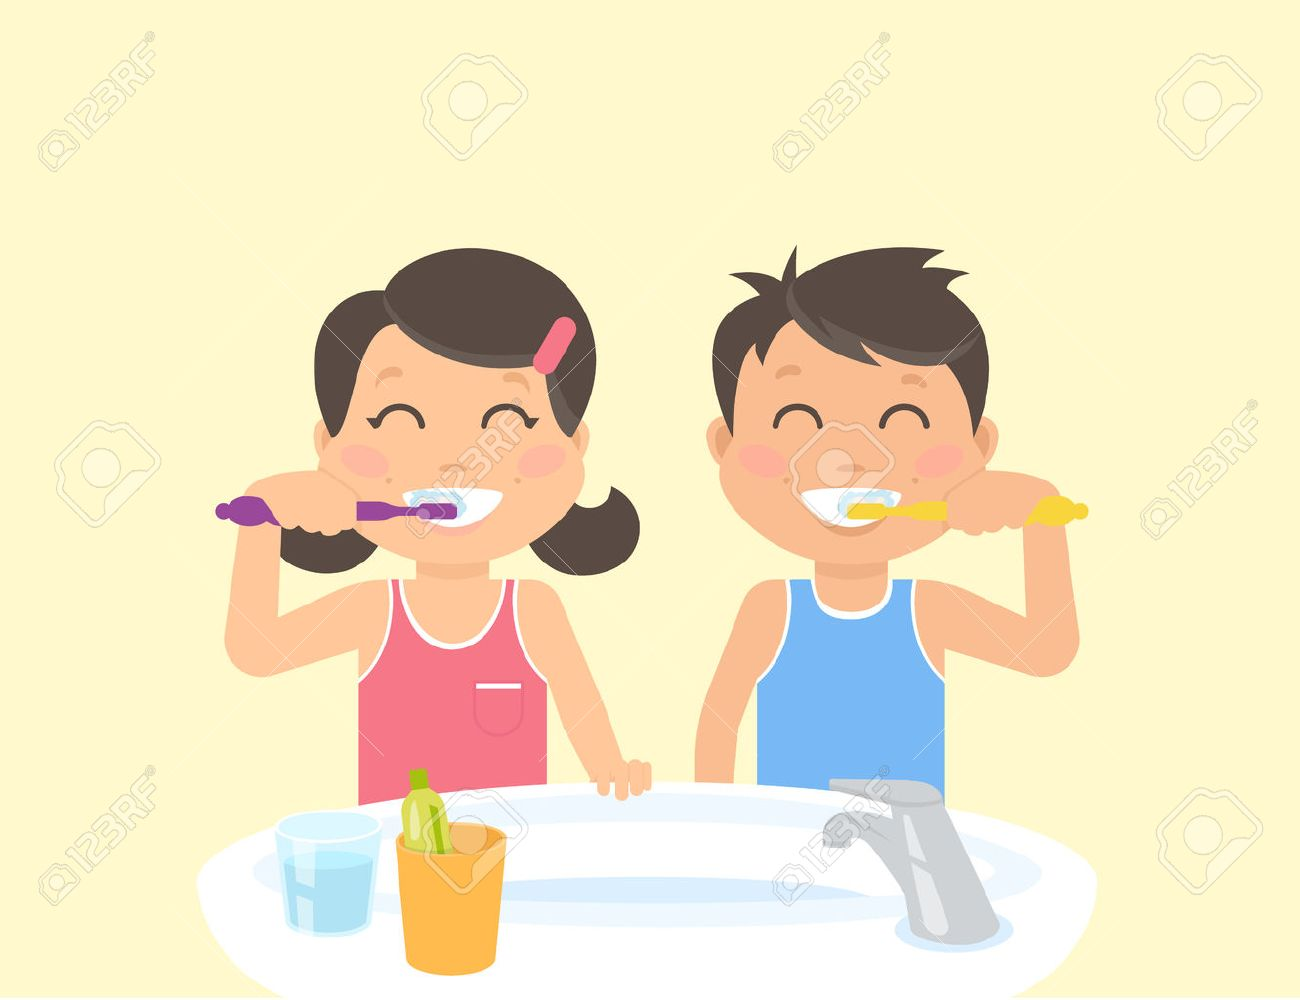 Happy kids brushing teeth standing in the bathroom near sink. Flat illustration of children teeth care and healthy lifestyle and hygiene - 51520459